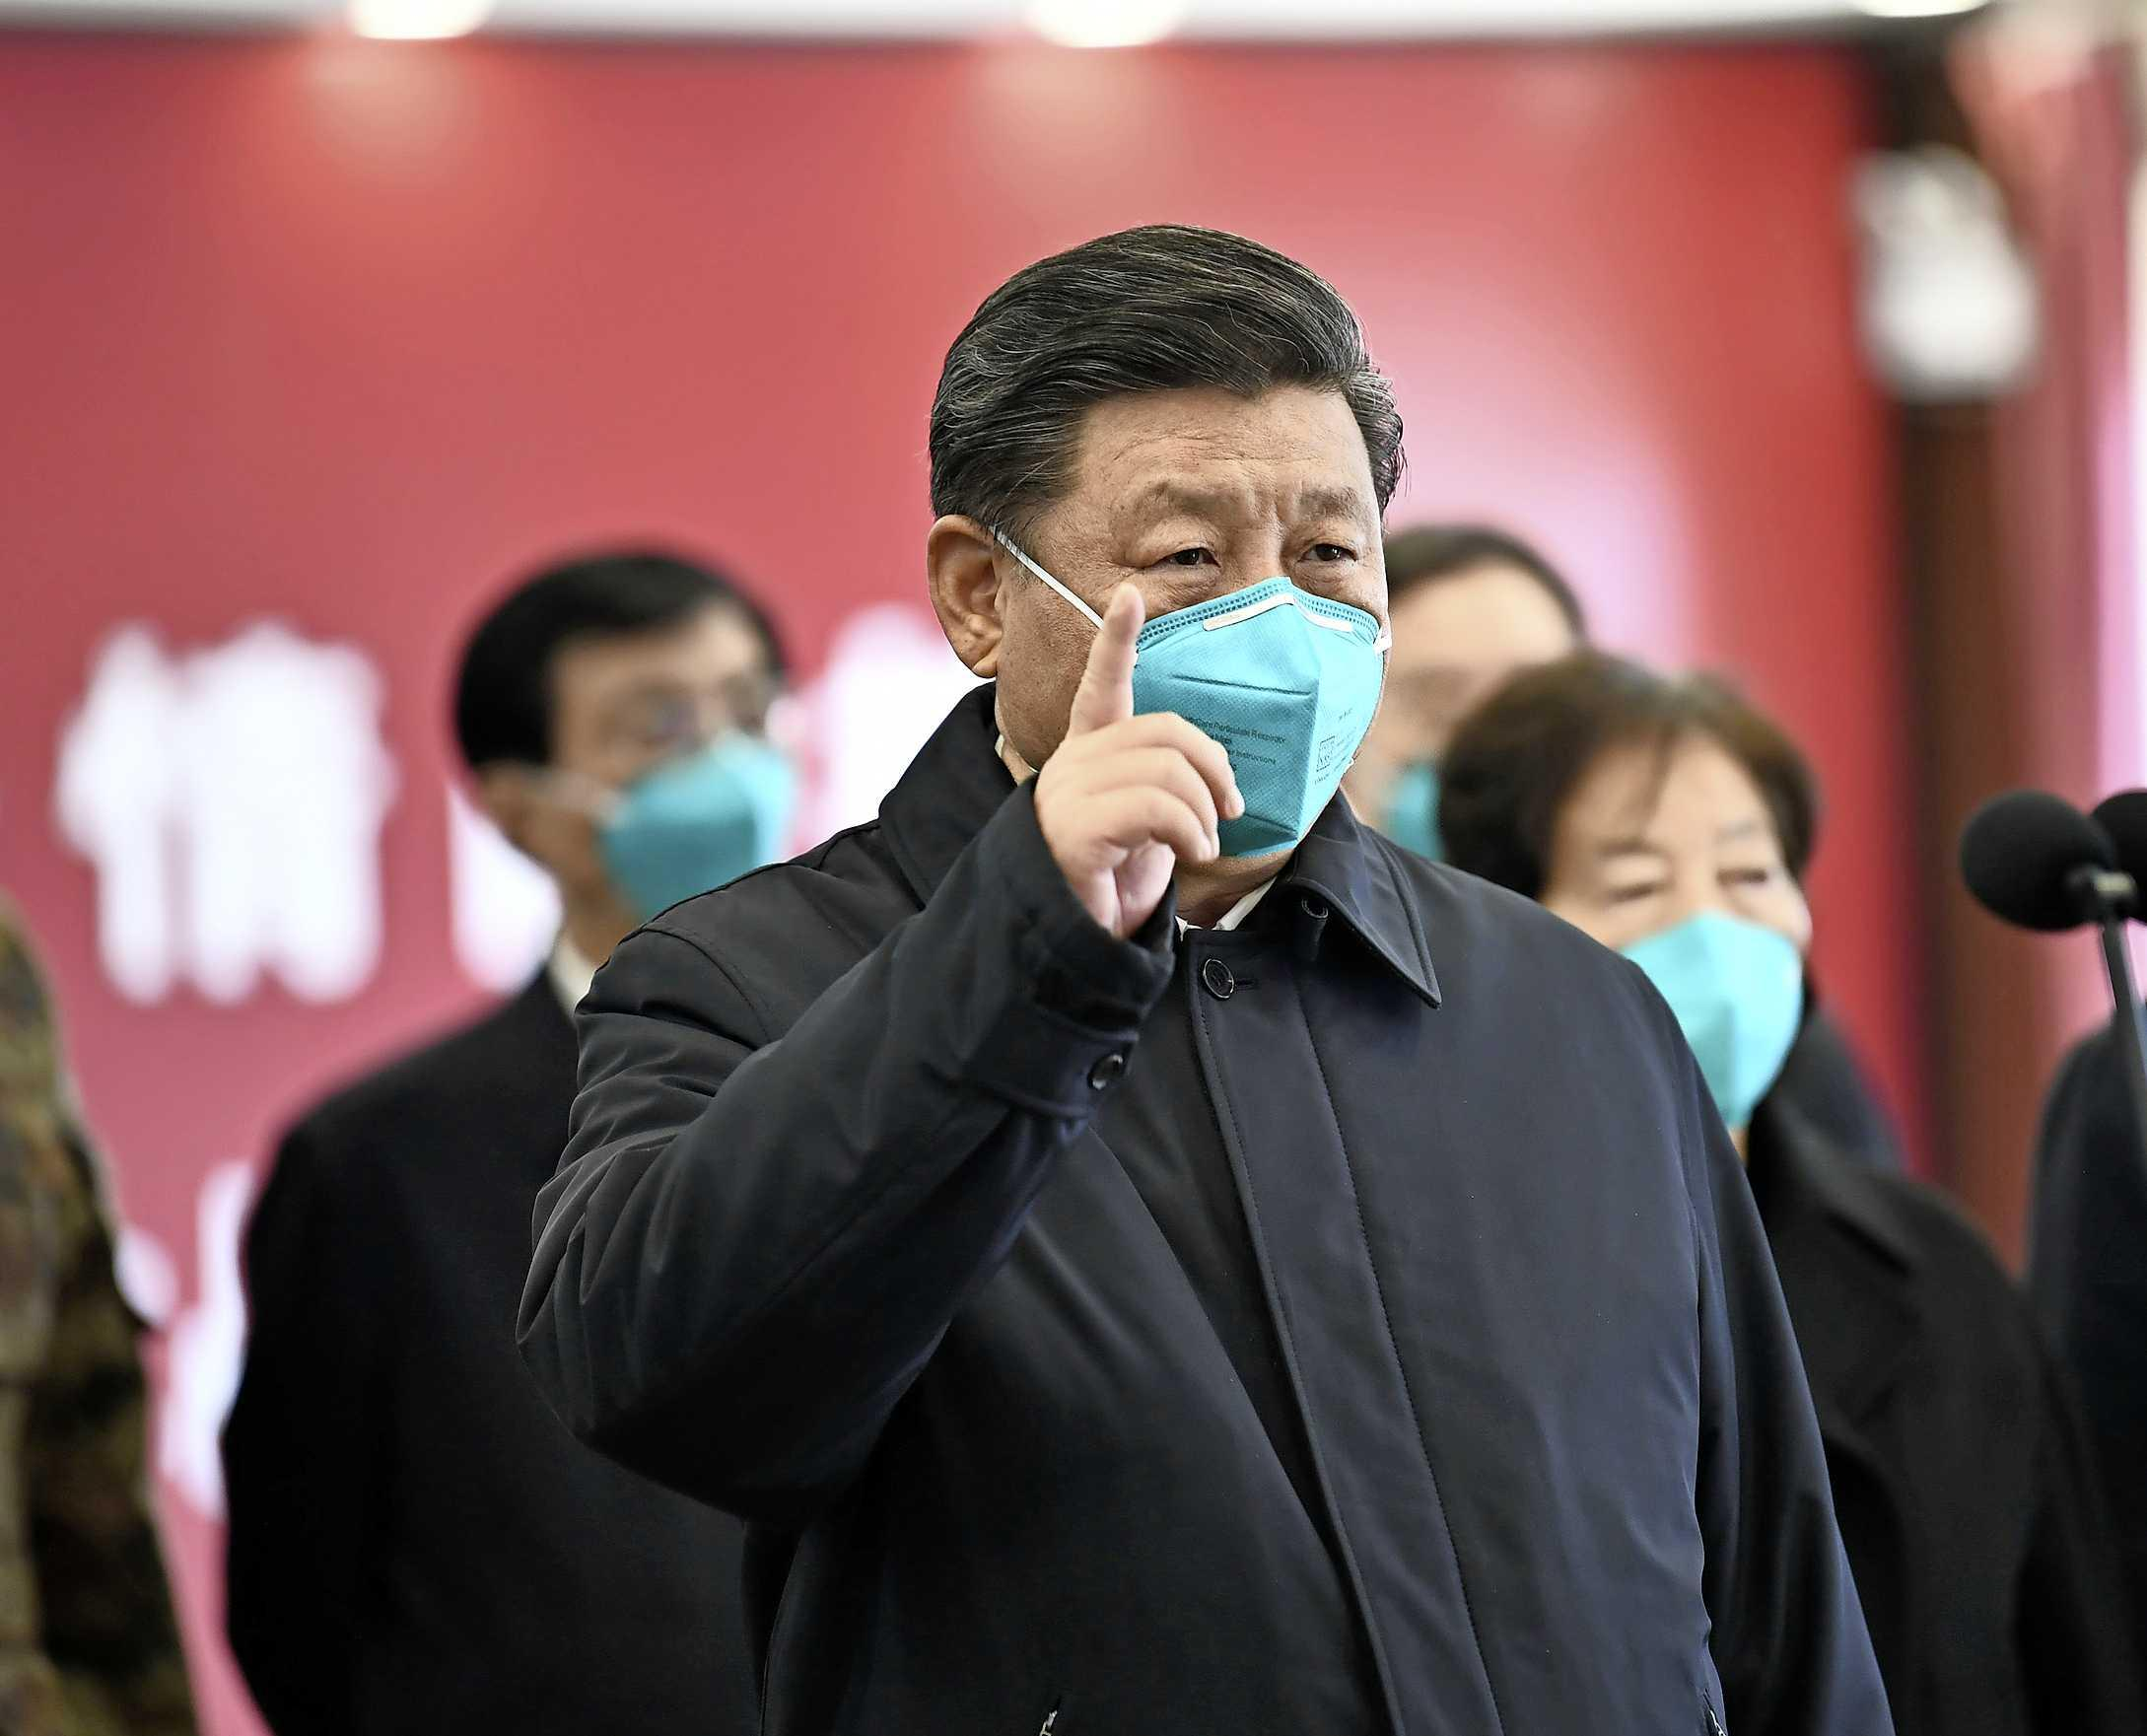 Chinese President Xi Jinping wearing a mask as he gestures to a coronavirus patient and medical staff via a video link at the Huoshenshan hospital in Wuhan, in China's central Hubei province on March 10, 2020